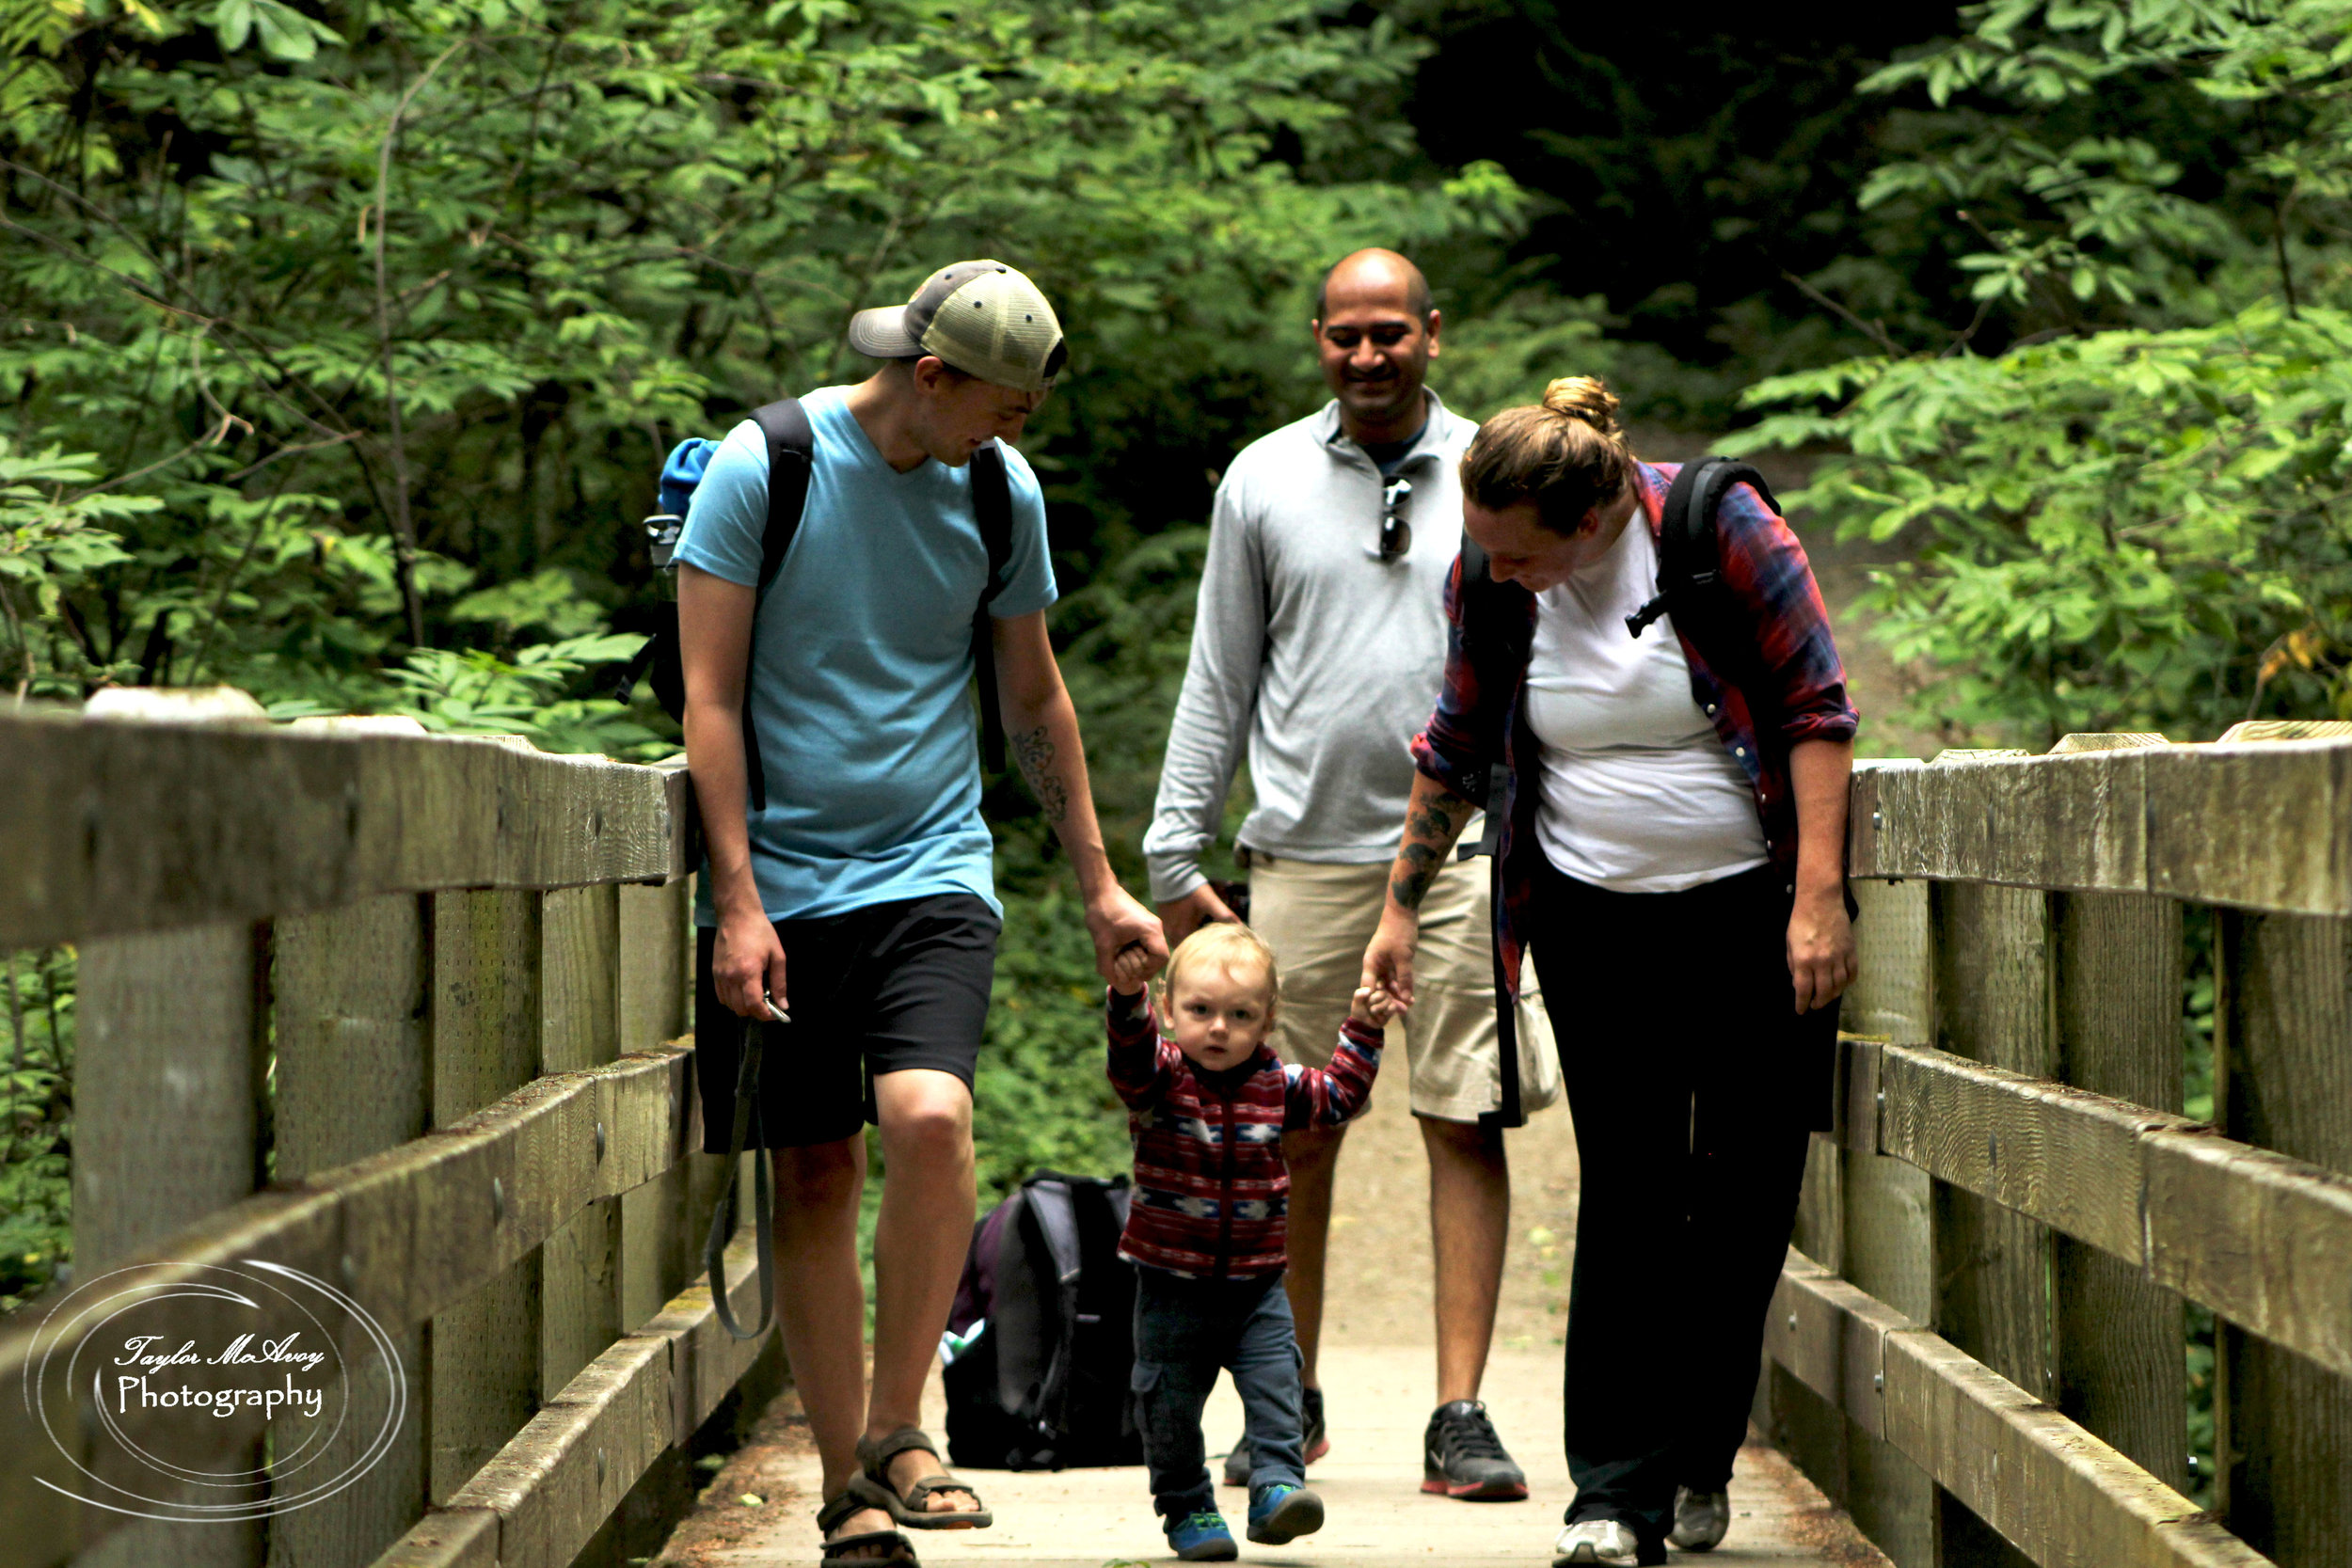 (From left to right) Andrew Schlosser, his son Atlas, AAditya Juwad, and Tephra Schlosser enjoy the view from the bridge of a small waterfall along the trail. Atlas enjoys the break from being carried to stretch his legs.